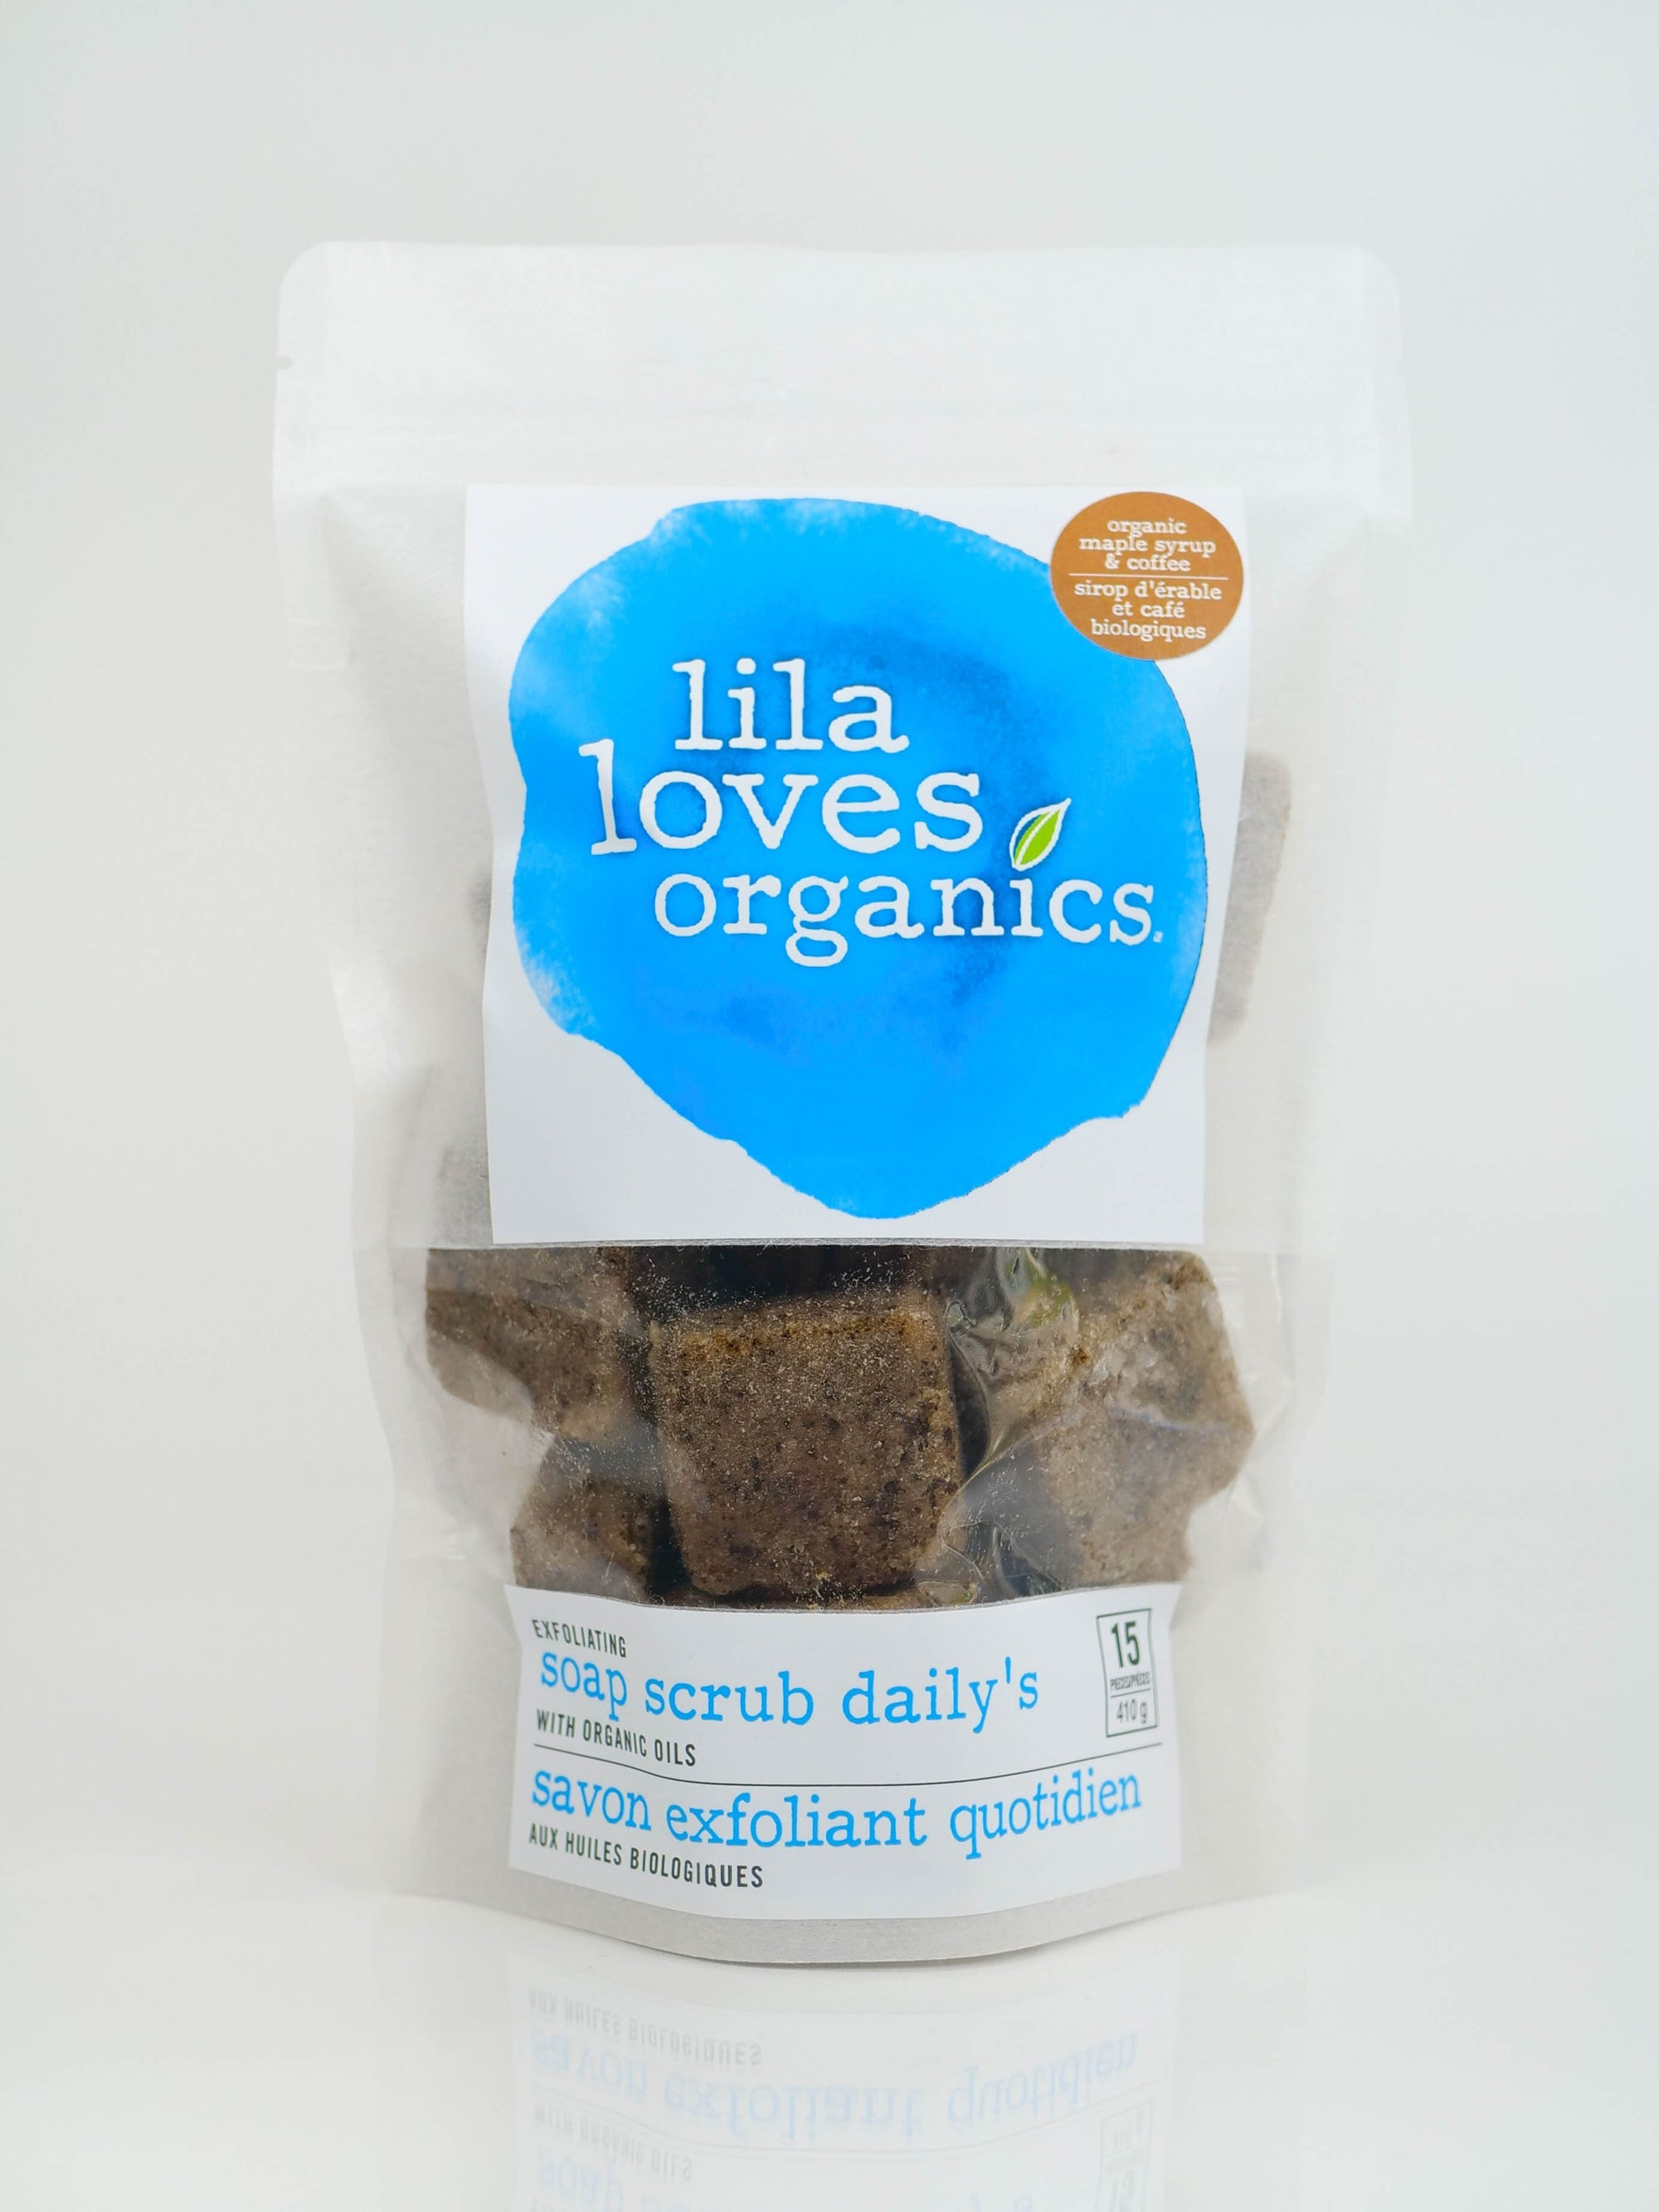 Personal Care - Lila Loves Organics Inc. - Exfoliating Scrub Cubes With Organic Oils, Maple Syrup & Coffee, 15 Pack - 410 G